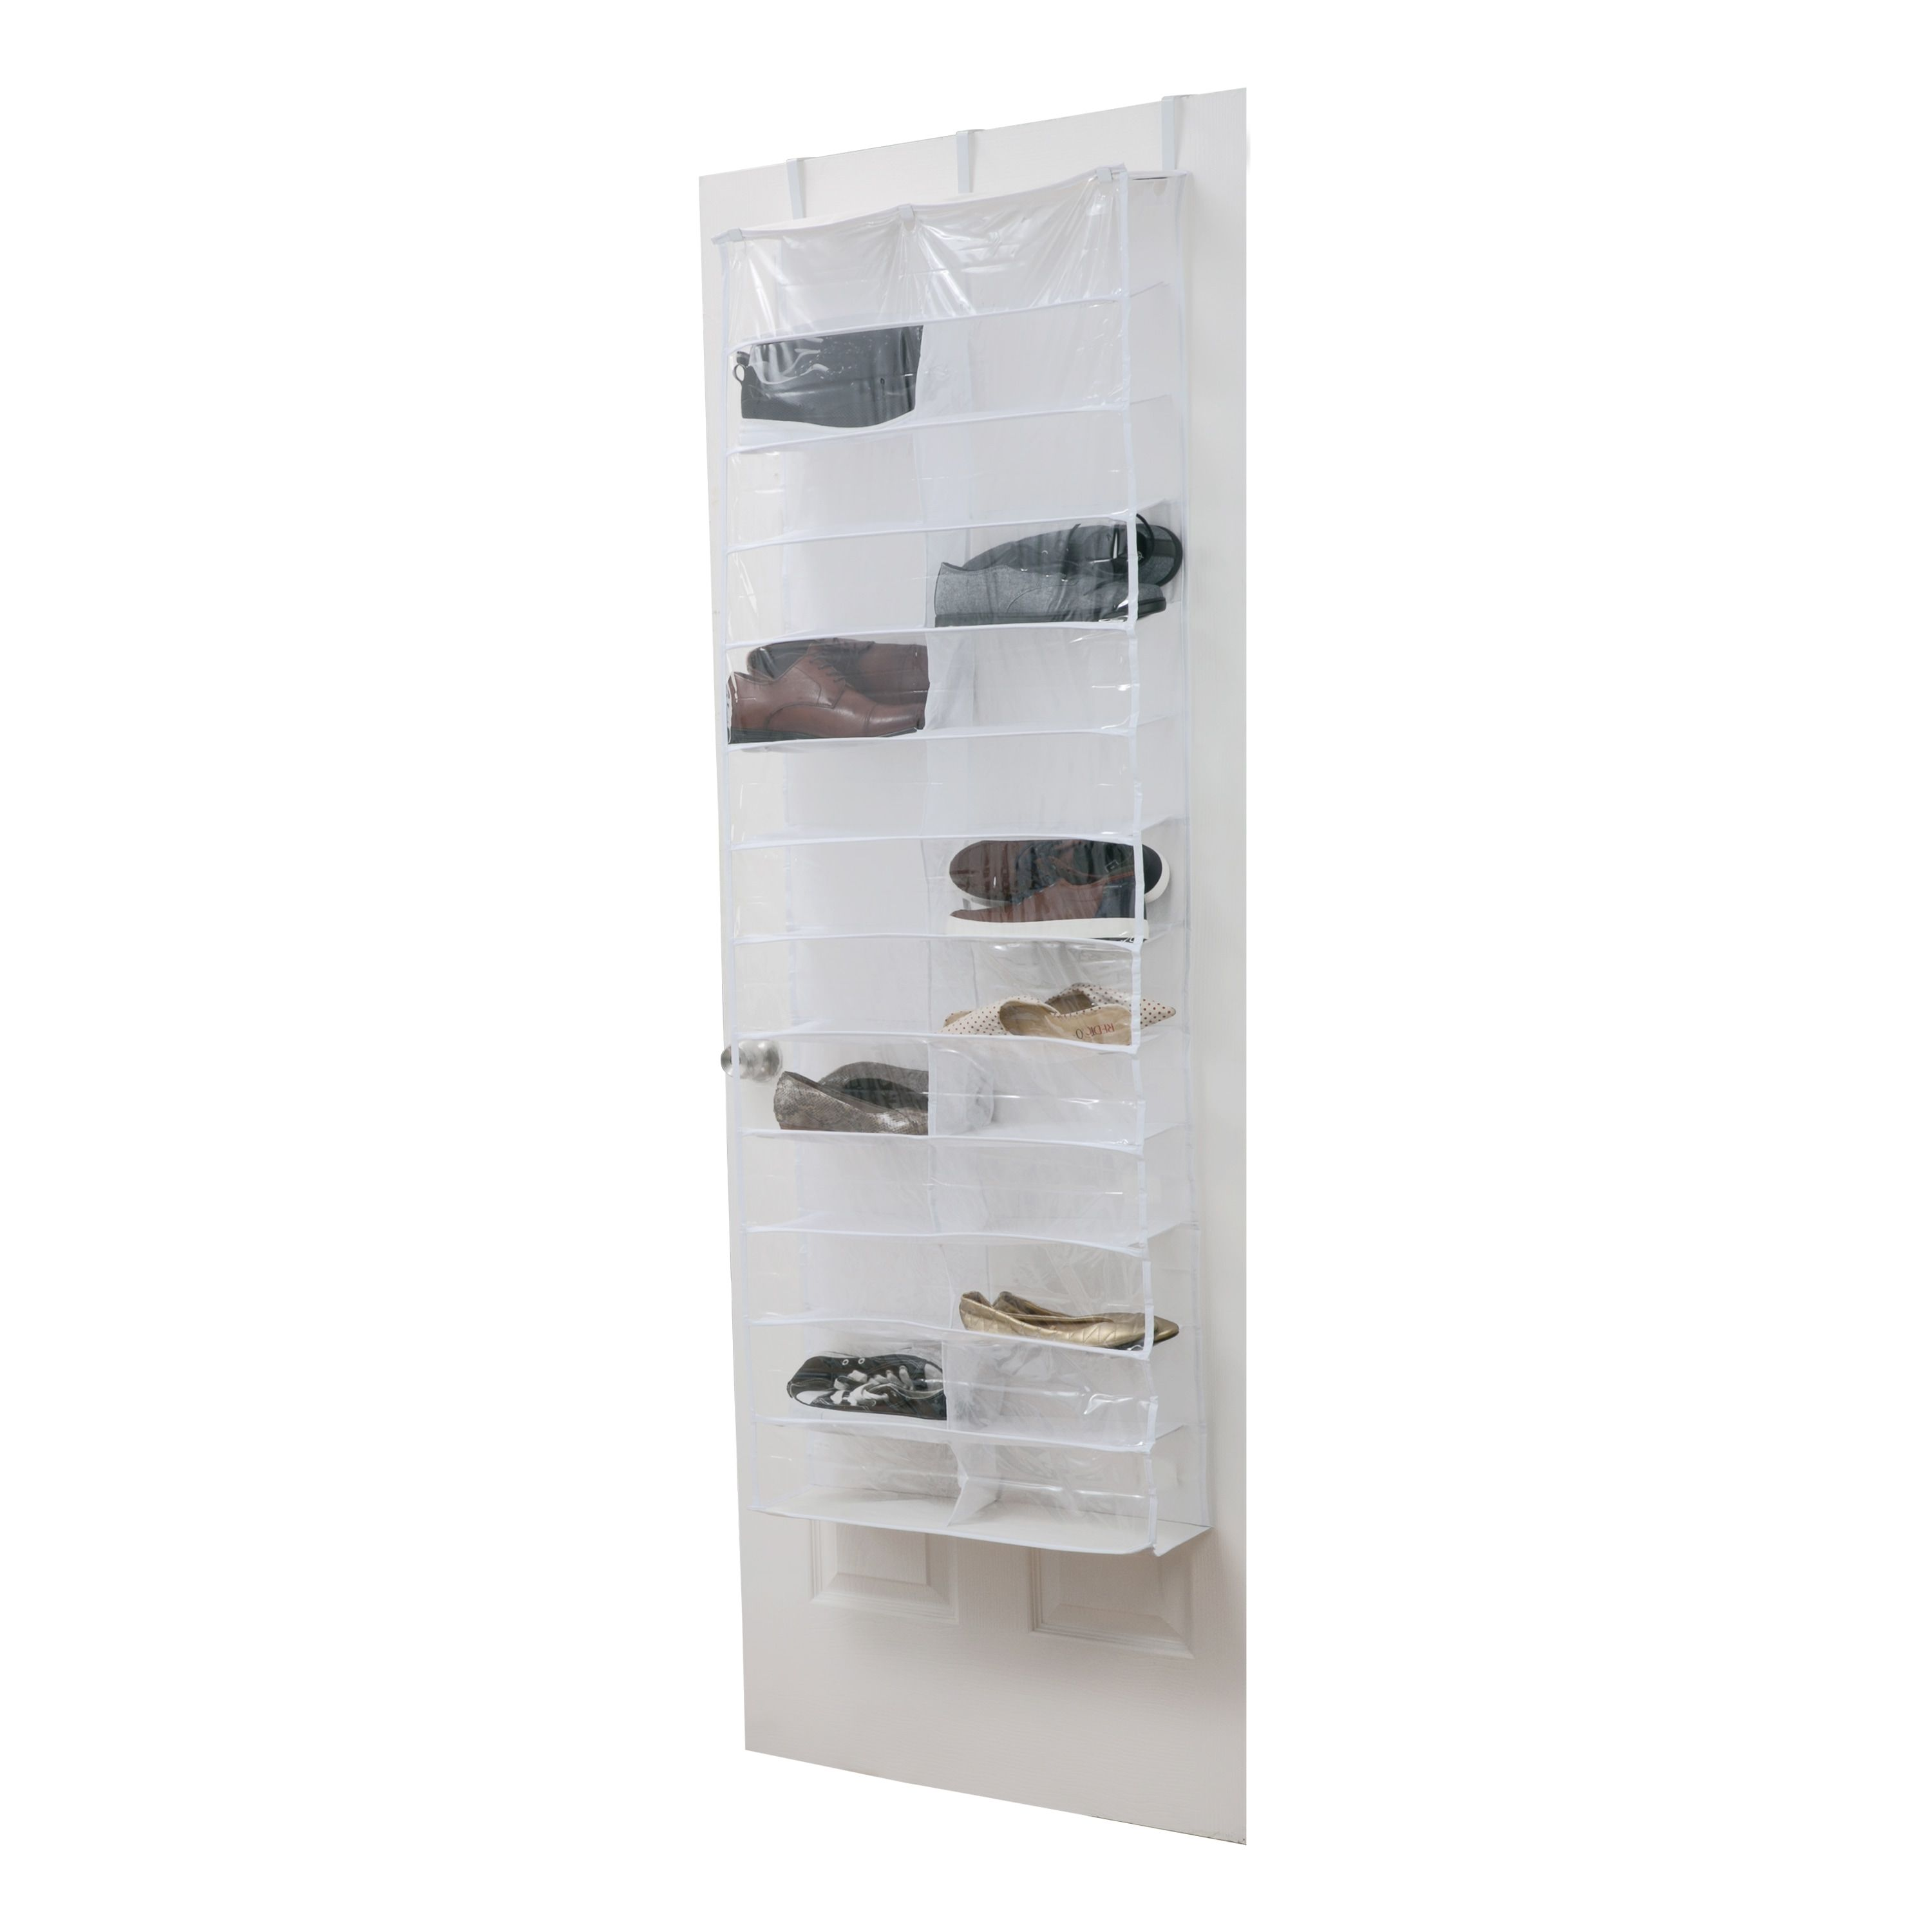 Kennedy Crystal Clear Pvc 26 Pocket Over The Door Shoe Organizer 26